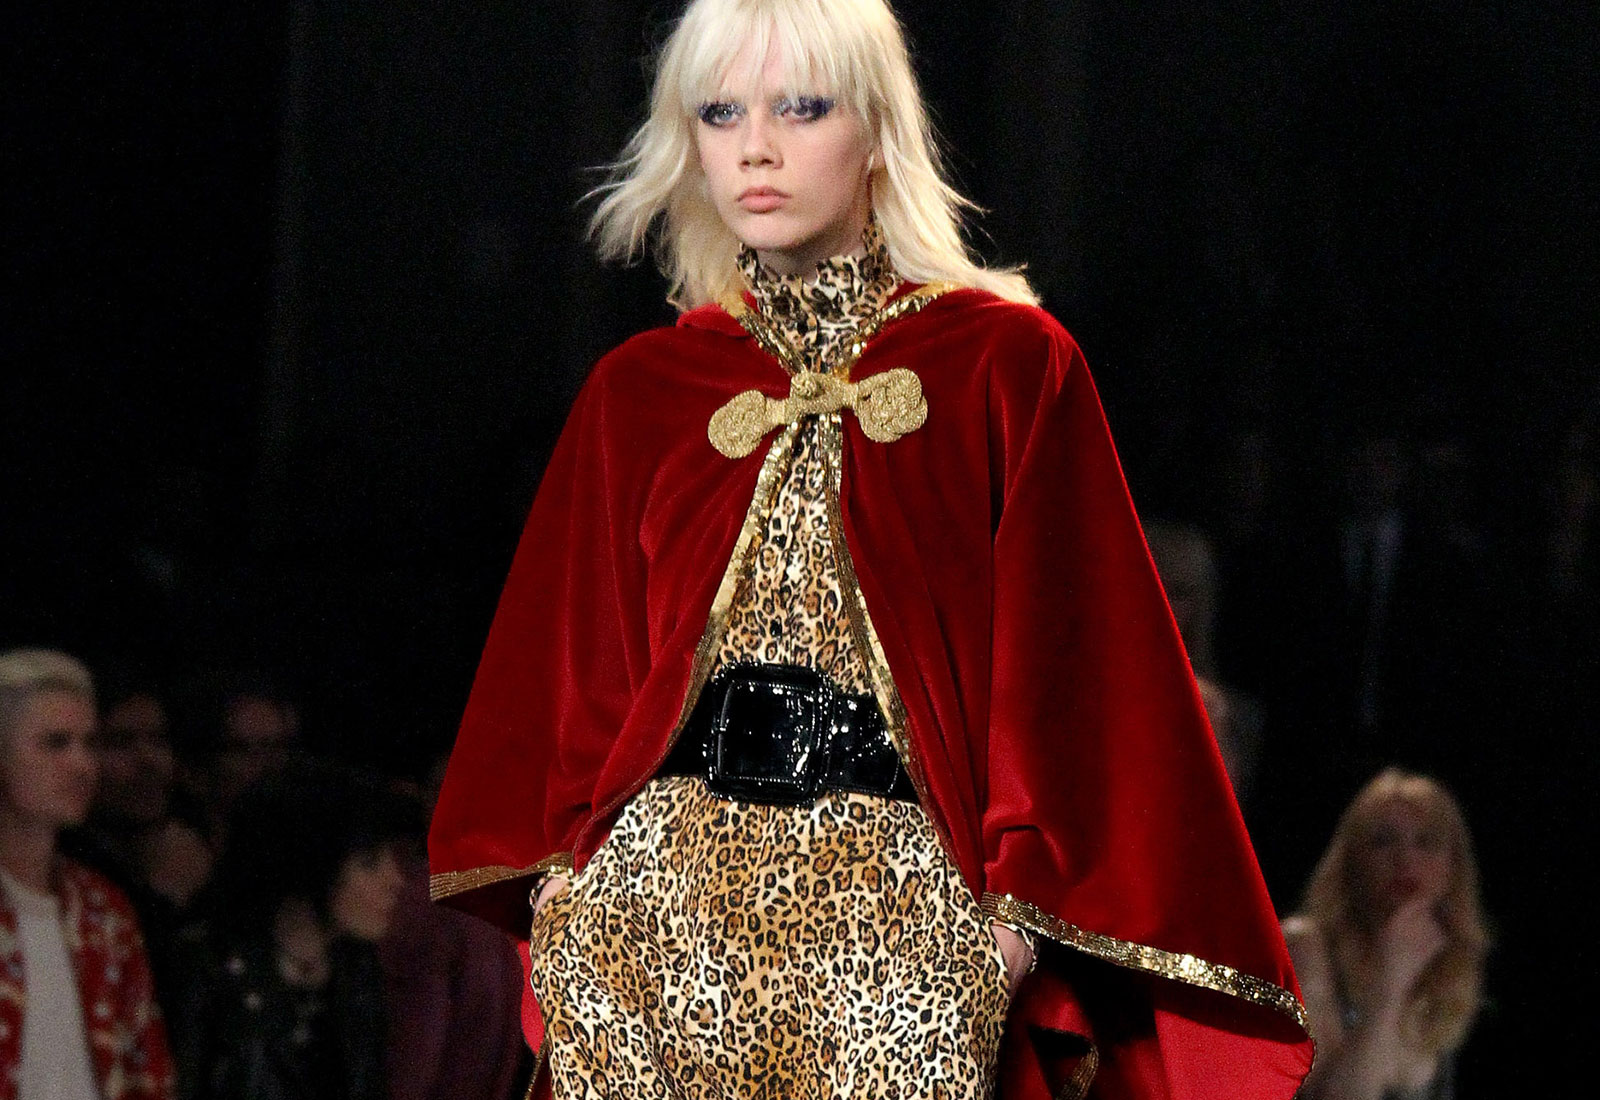 saint laurent aw16/17 runway look capes winter fashion trends 1600 x 1100